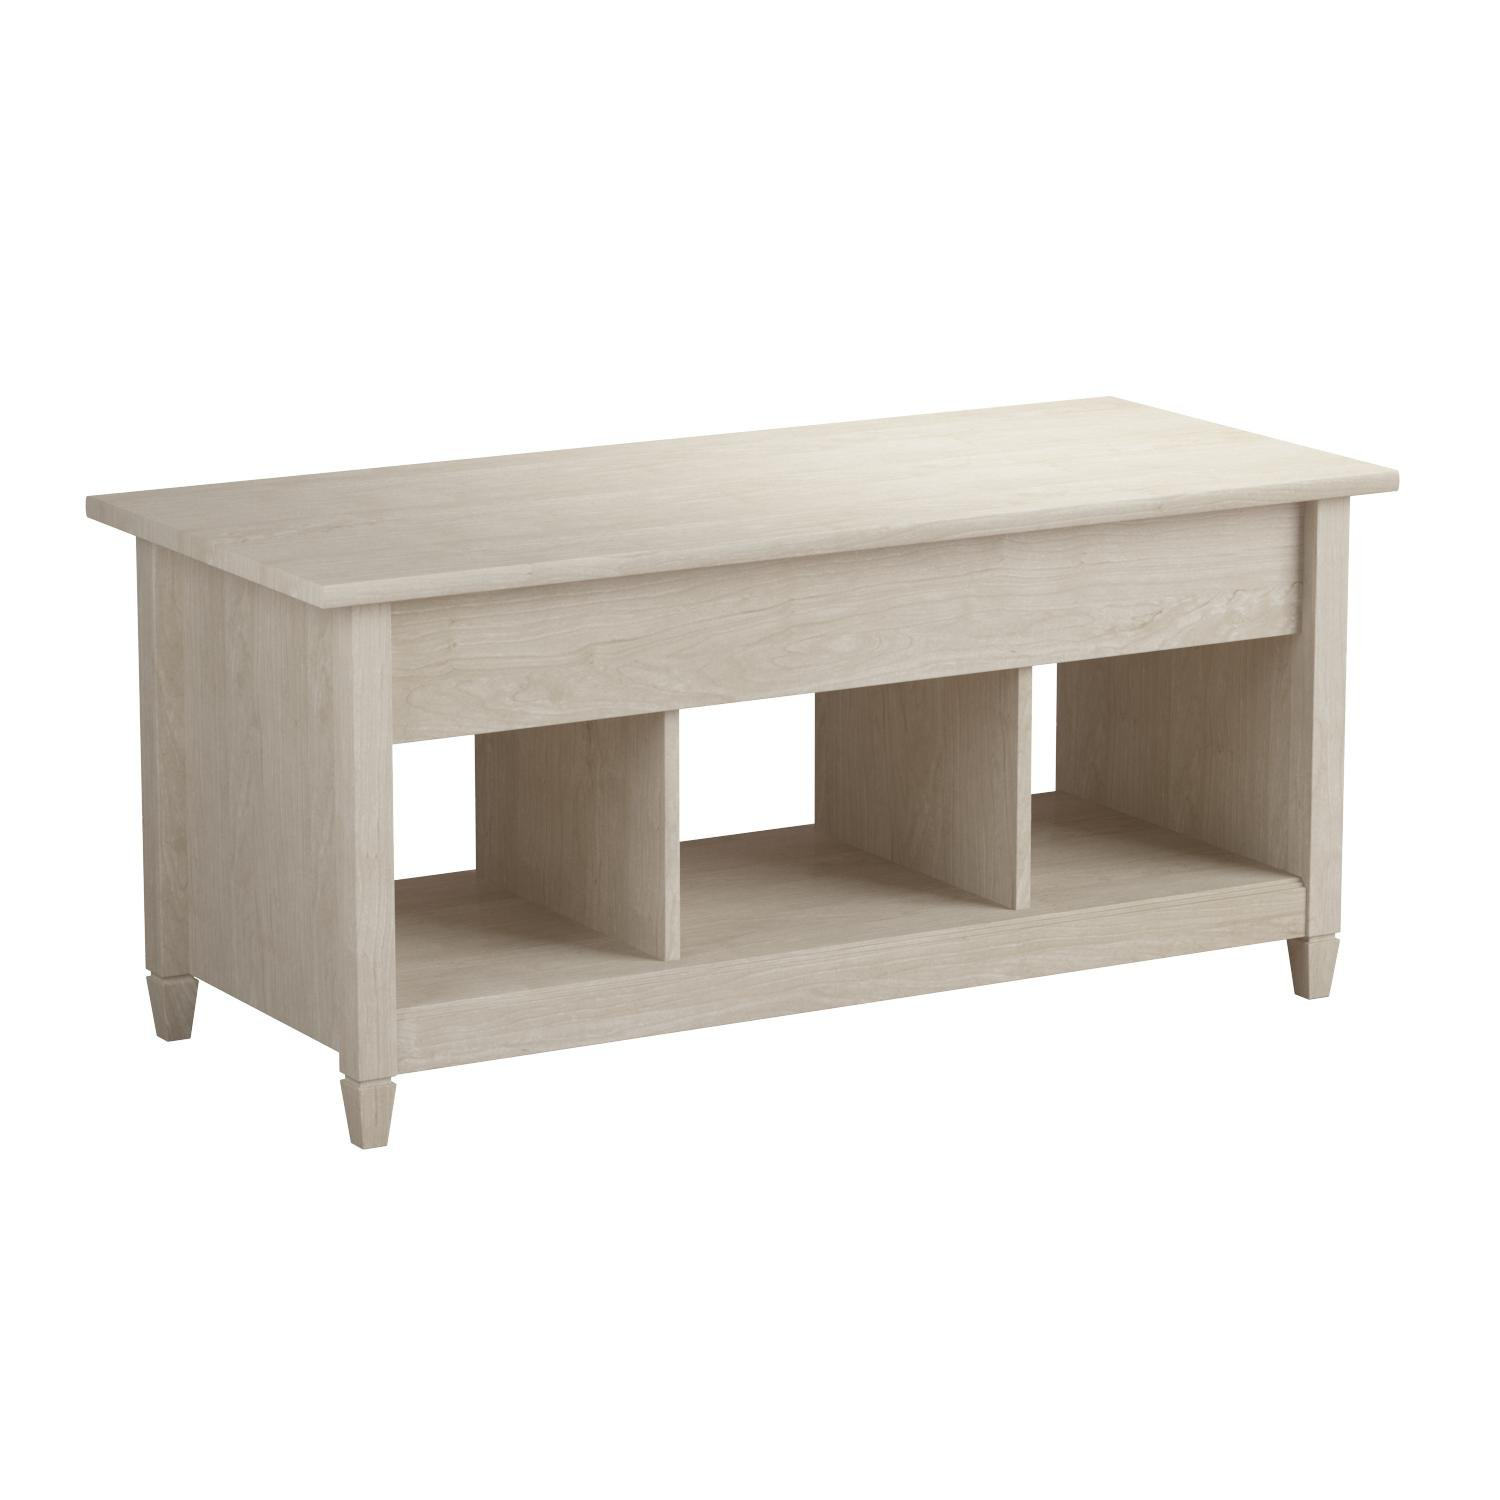 Sauder 419096 Coffee Table, Furniture Edge Water Lift-Top, Chalk Chestnut